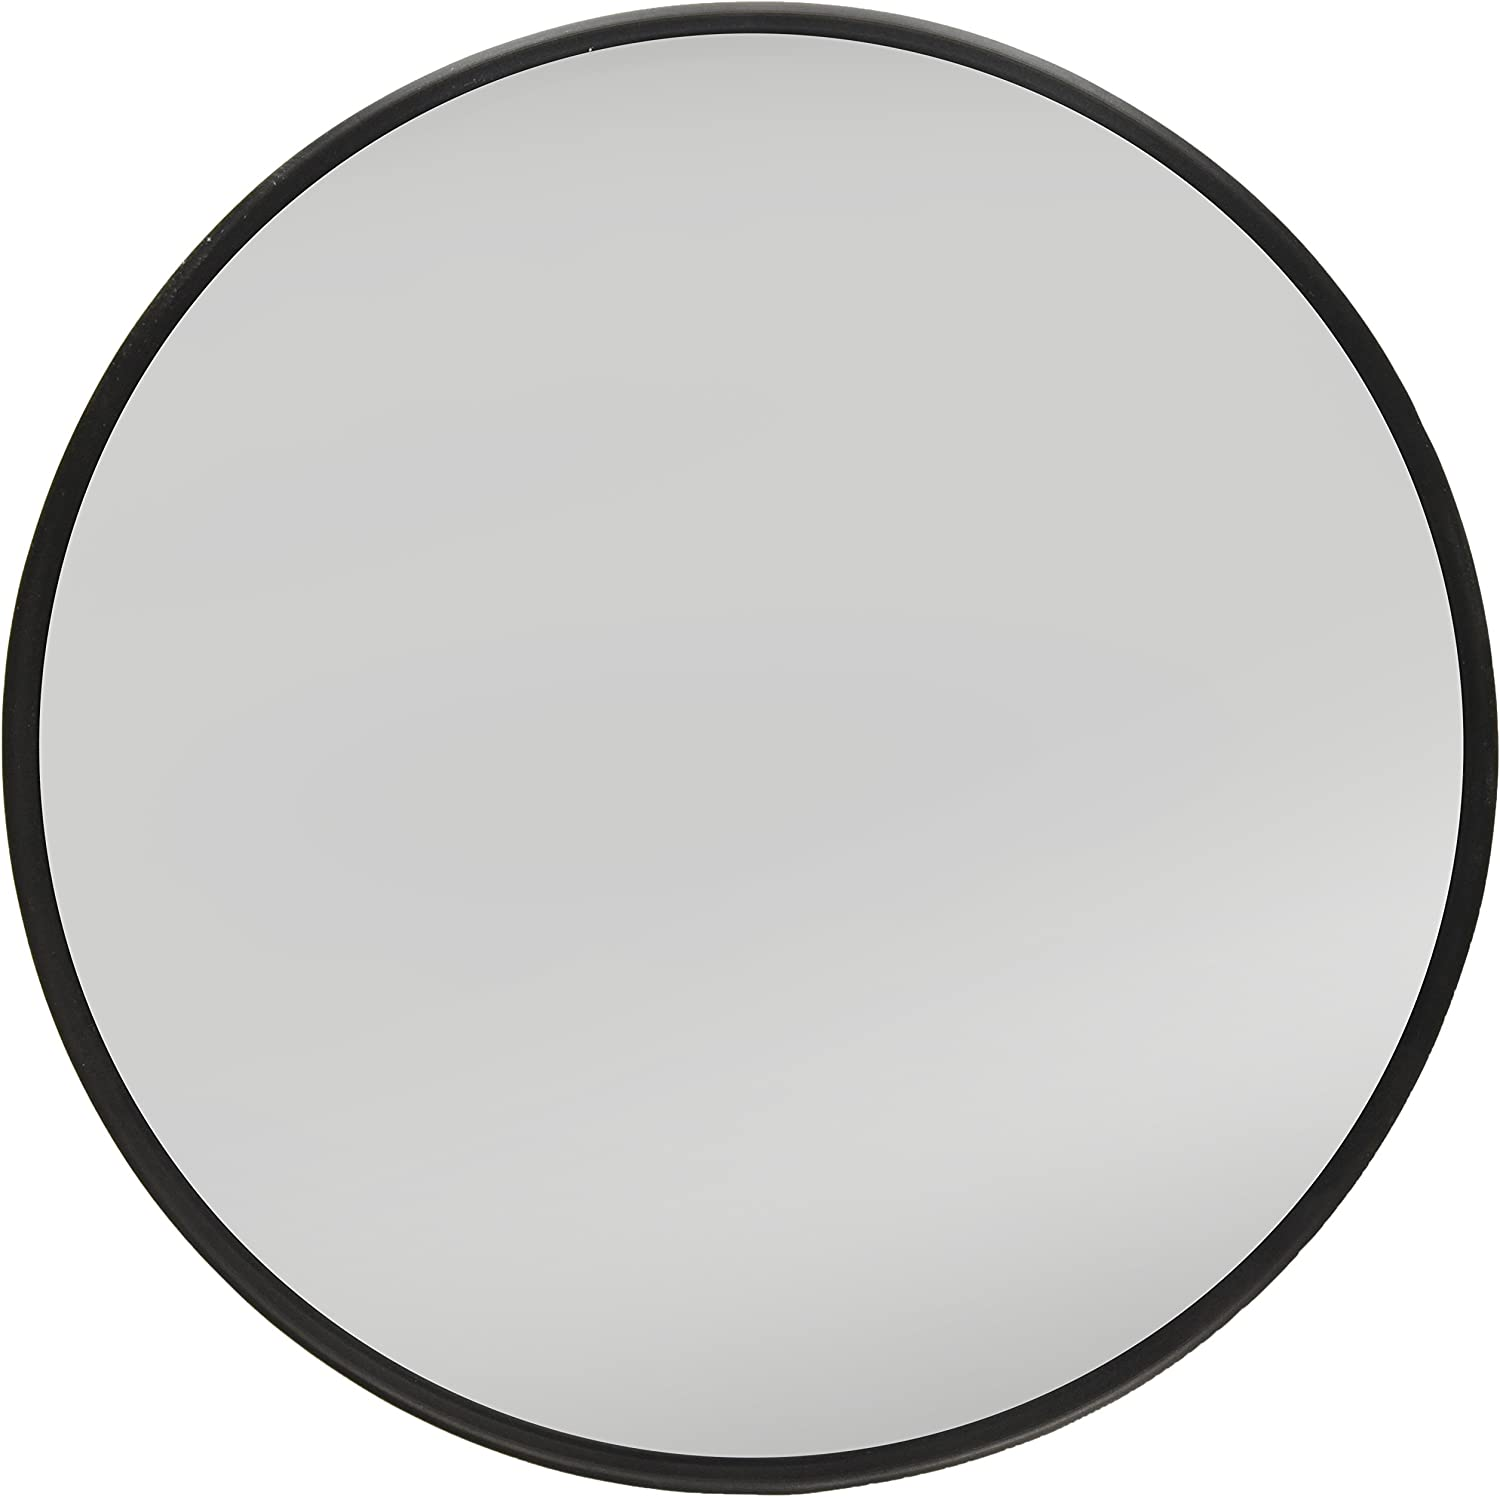 Stainless Steel 12010 GROTE Convex Mirror with Center Mount